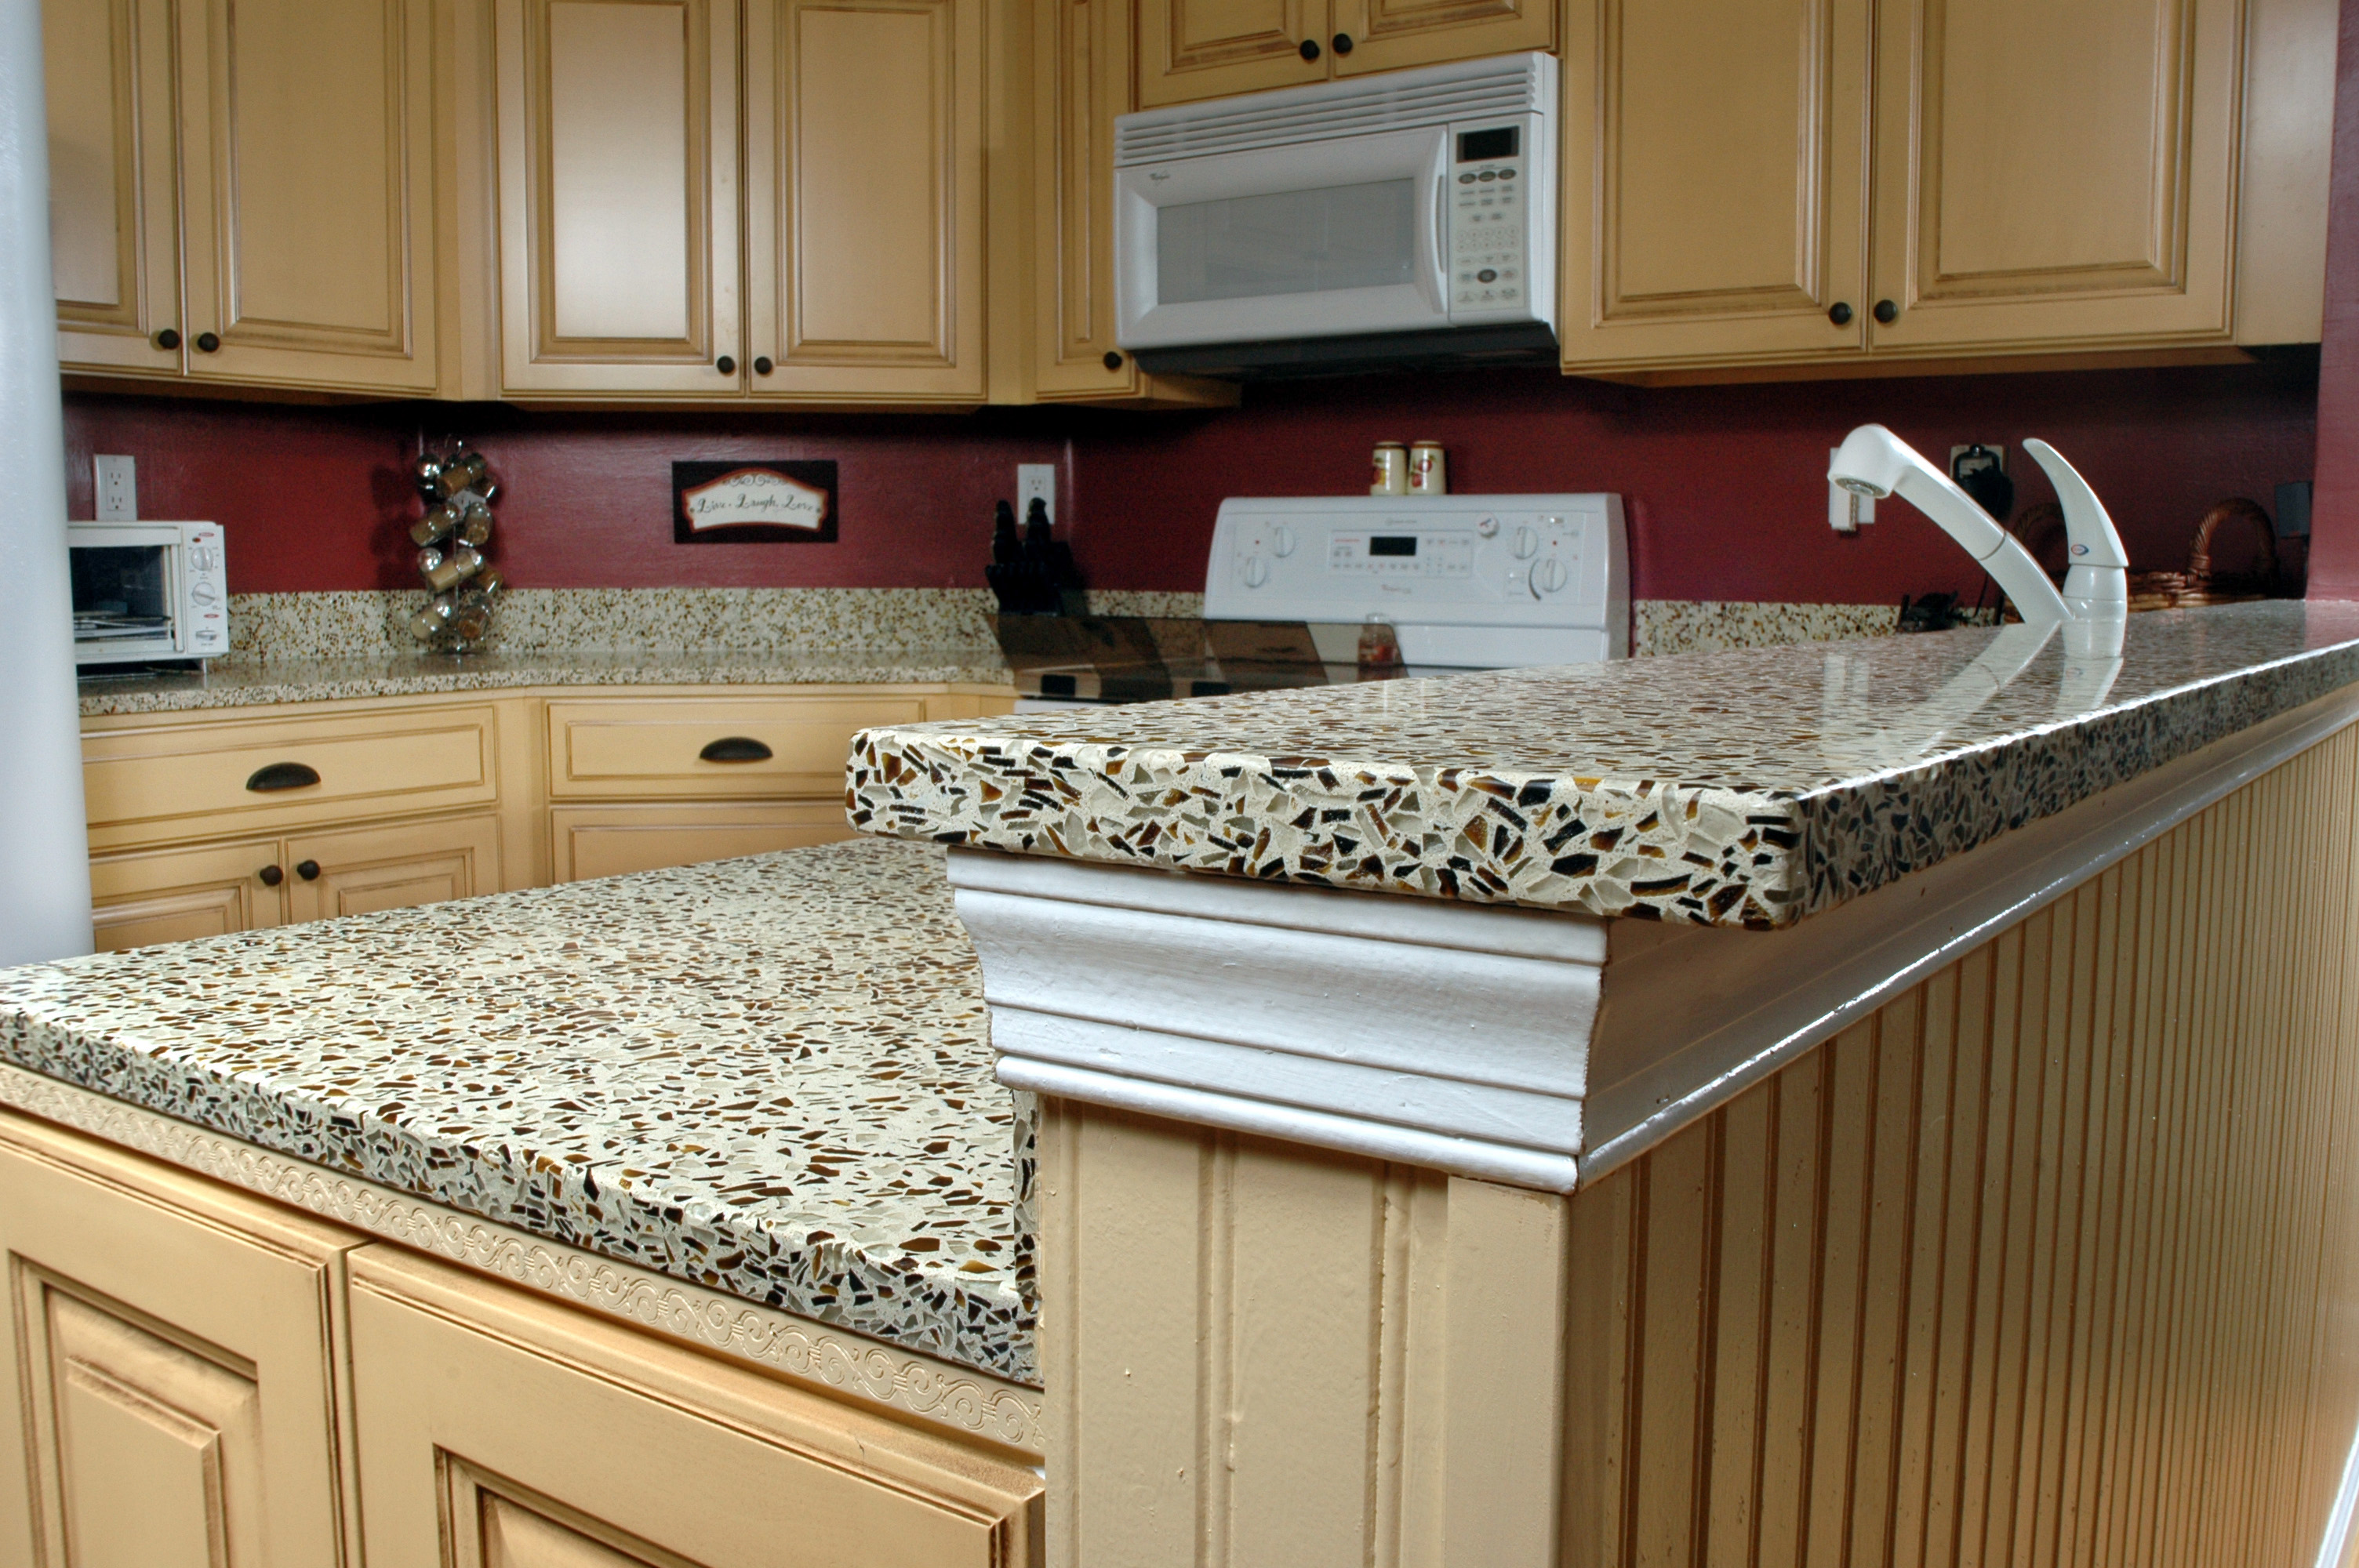 painting kitchen countertops ideas unique kitchen countertops Elegant Brown Painting Kitchen Countertops Ideas Image 5 of 10